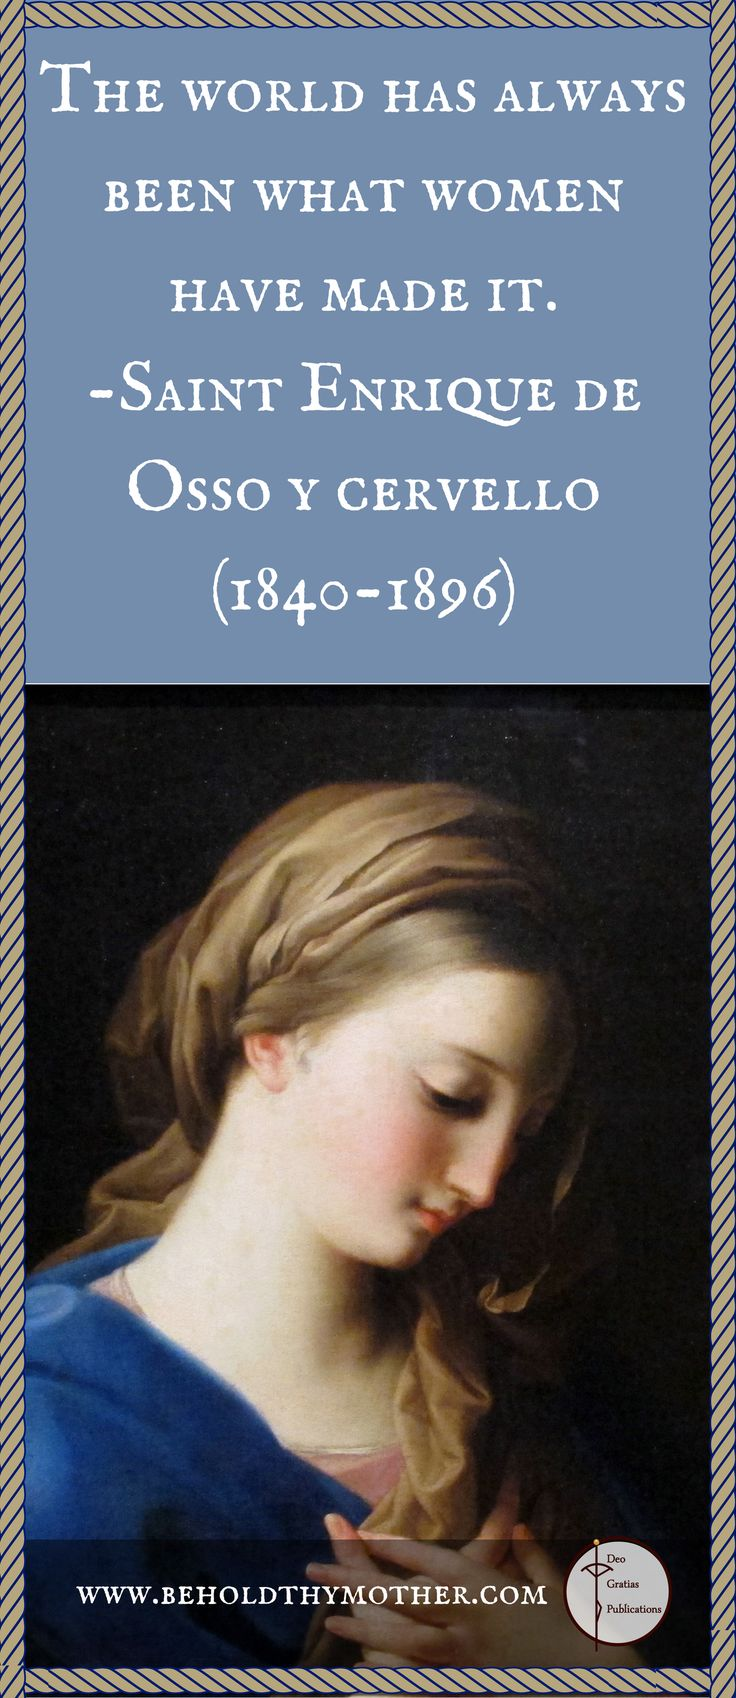 This beautiful painting of the Virgin Mary is by Pompeo Batoni (1708-1787) with such a true quote by Saint Enrique De Osso y Cervello (1840-1896). www.beholdthymother.com